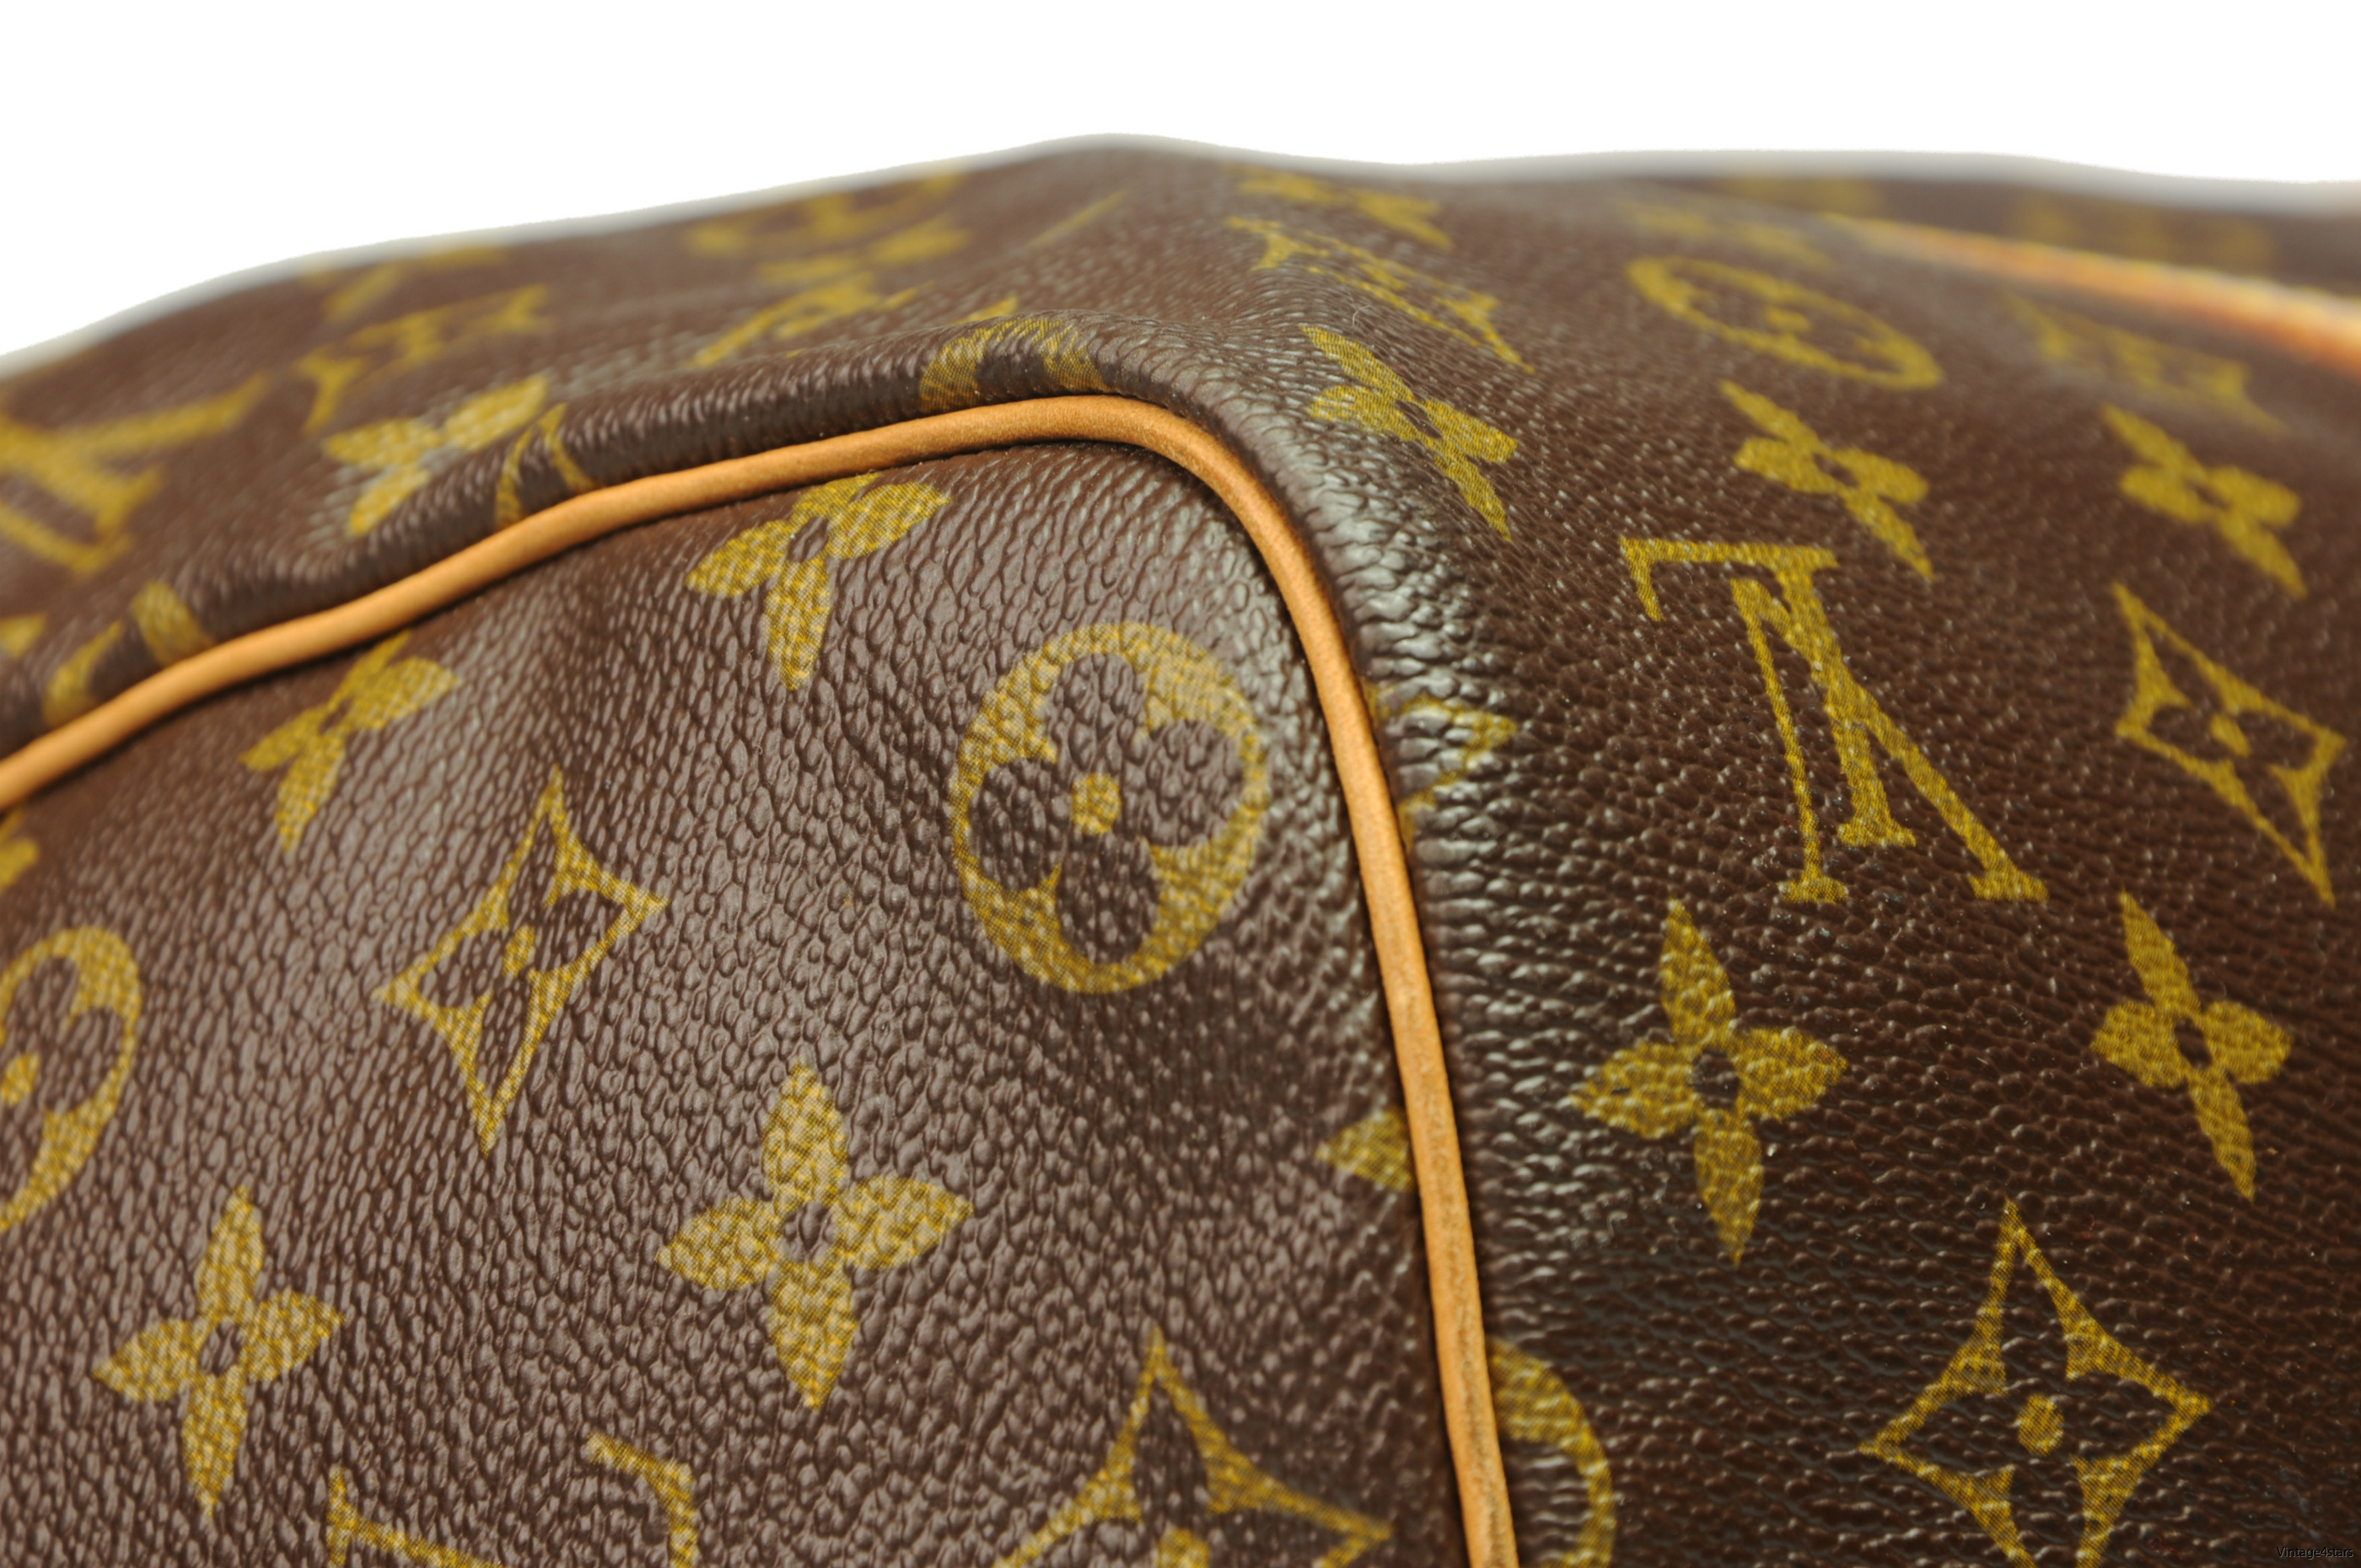 Louis Vuitton Sac Souple 45 a